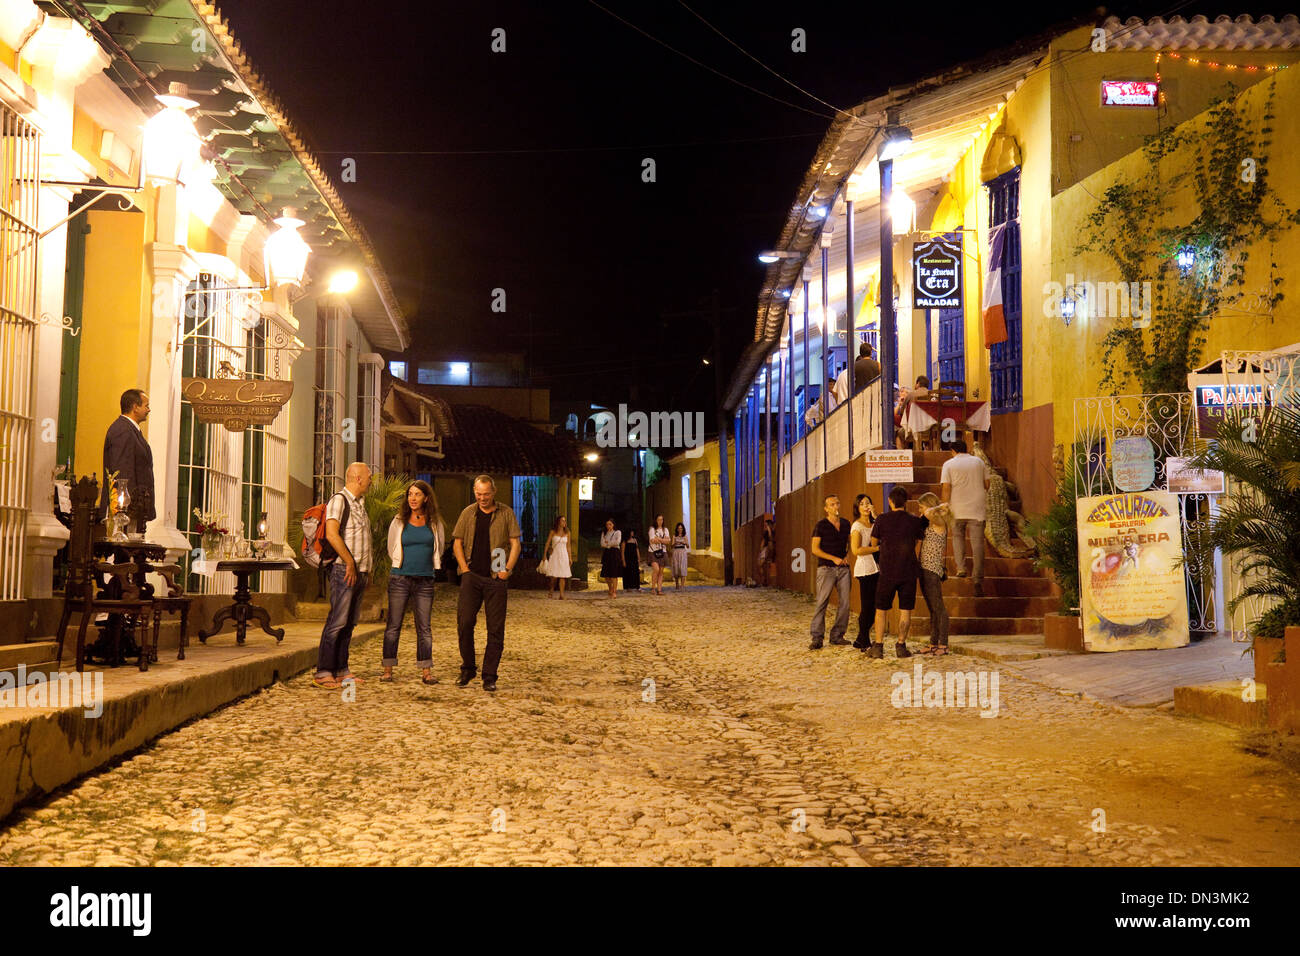 People on the street in Trinidad Cuba at night going to restaurants and bars for the nightlife, Trinidad Cuba caribbean - Stock Image